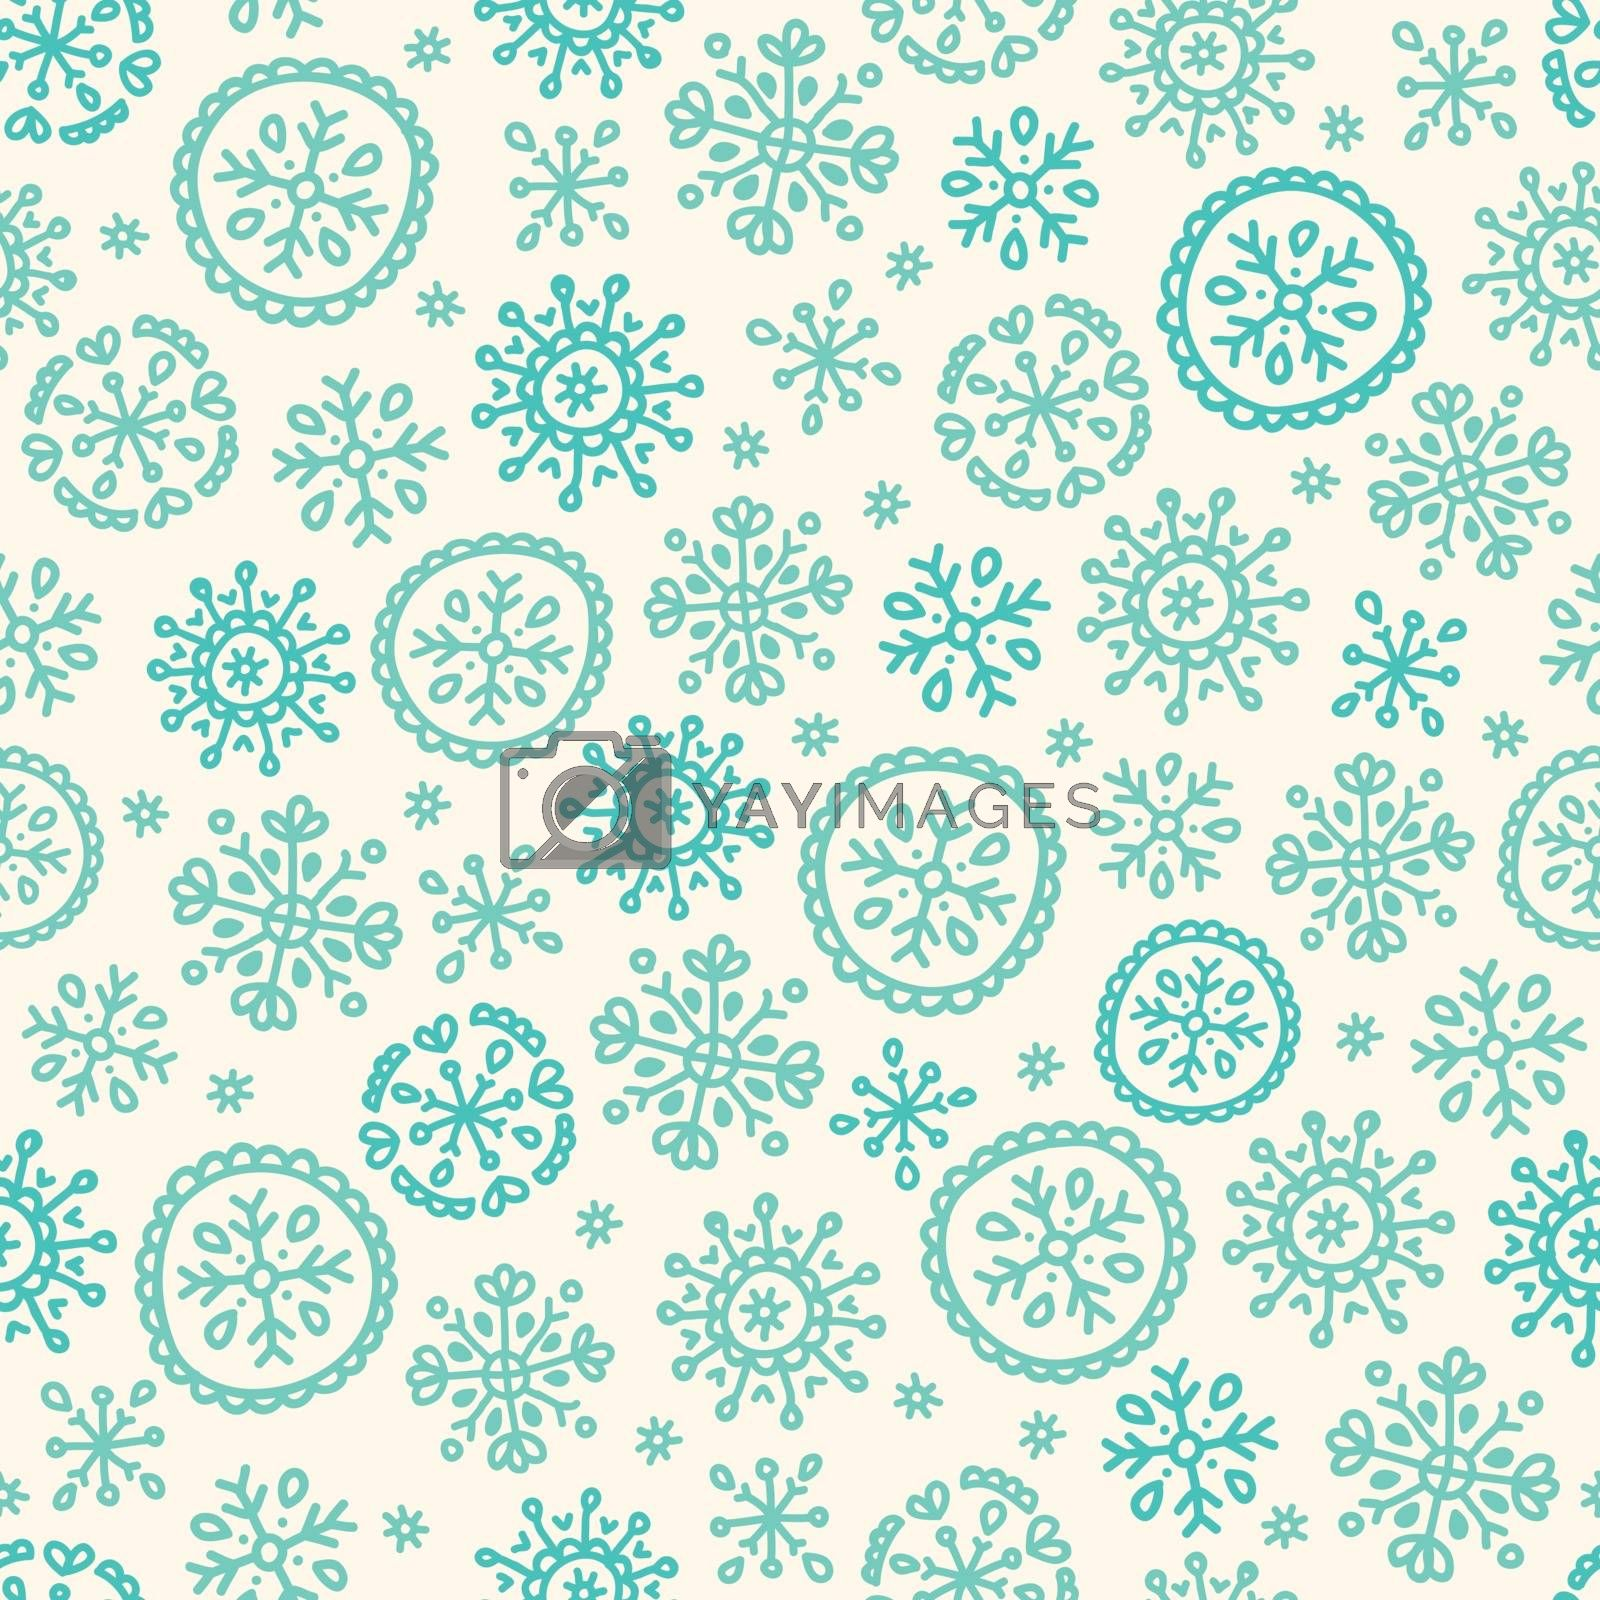 Vector illustration with classic Christmas pattern.